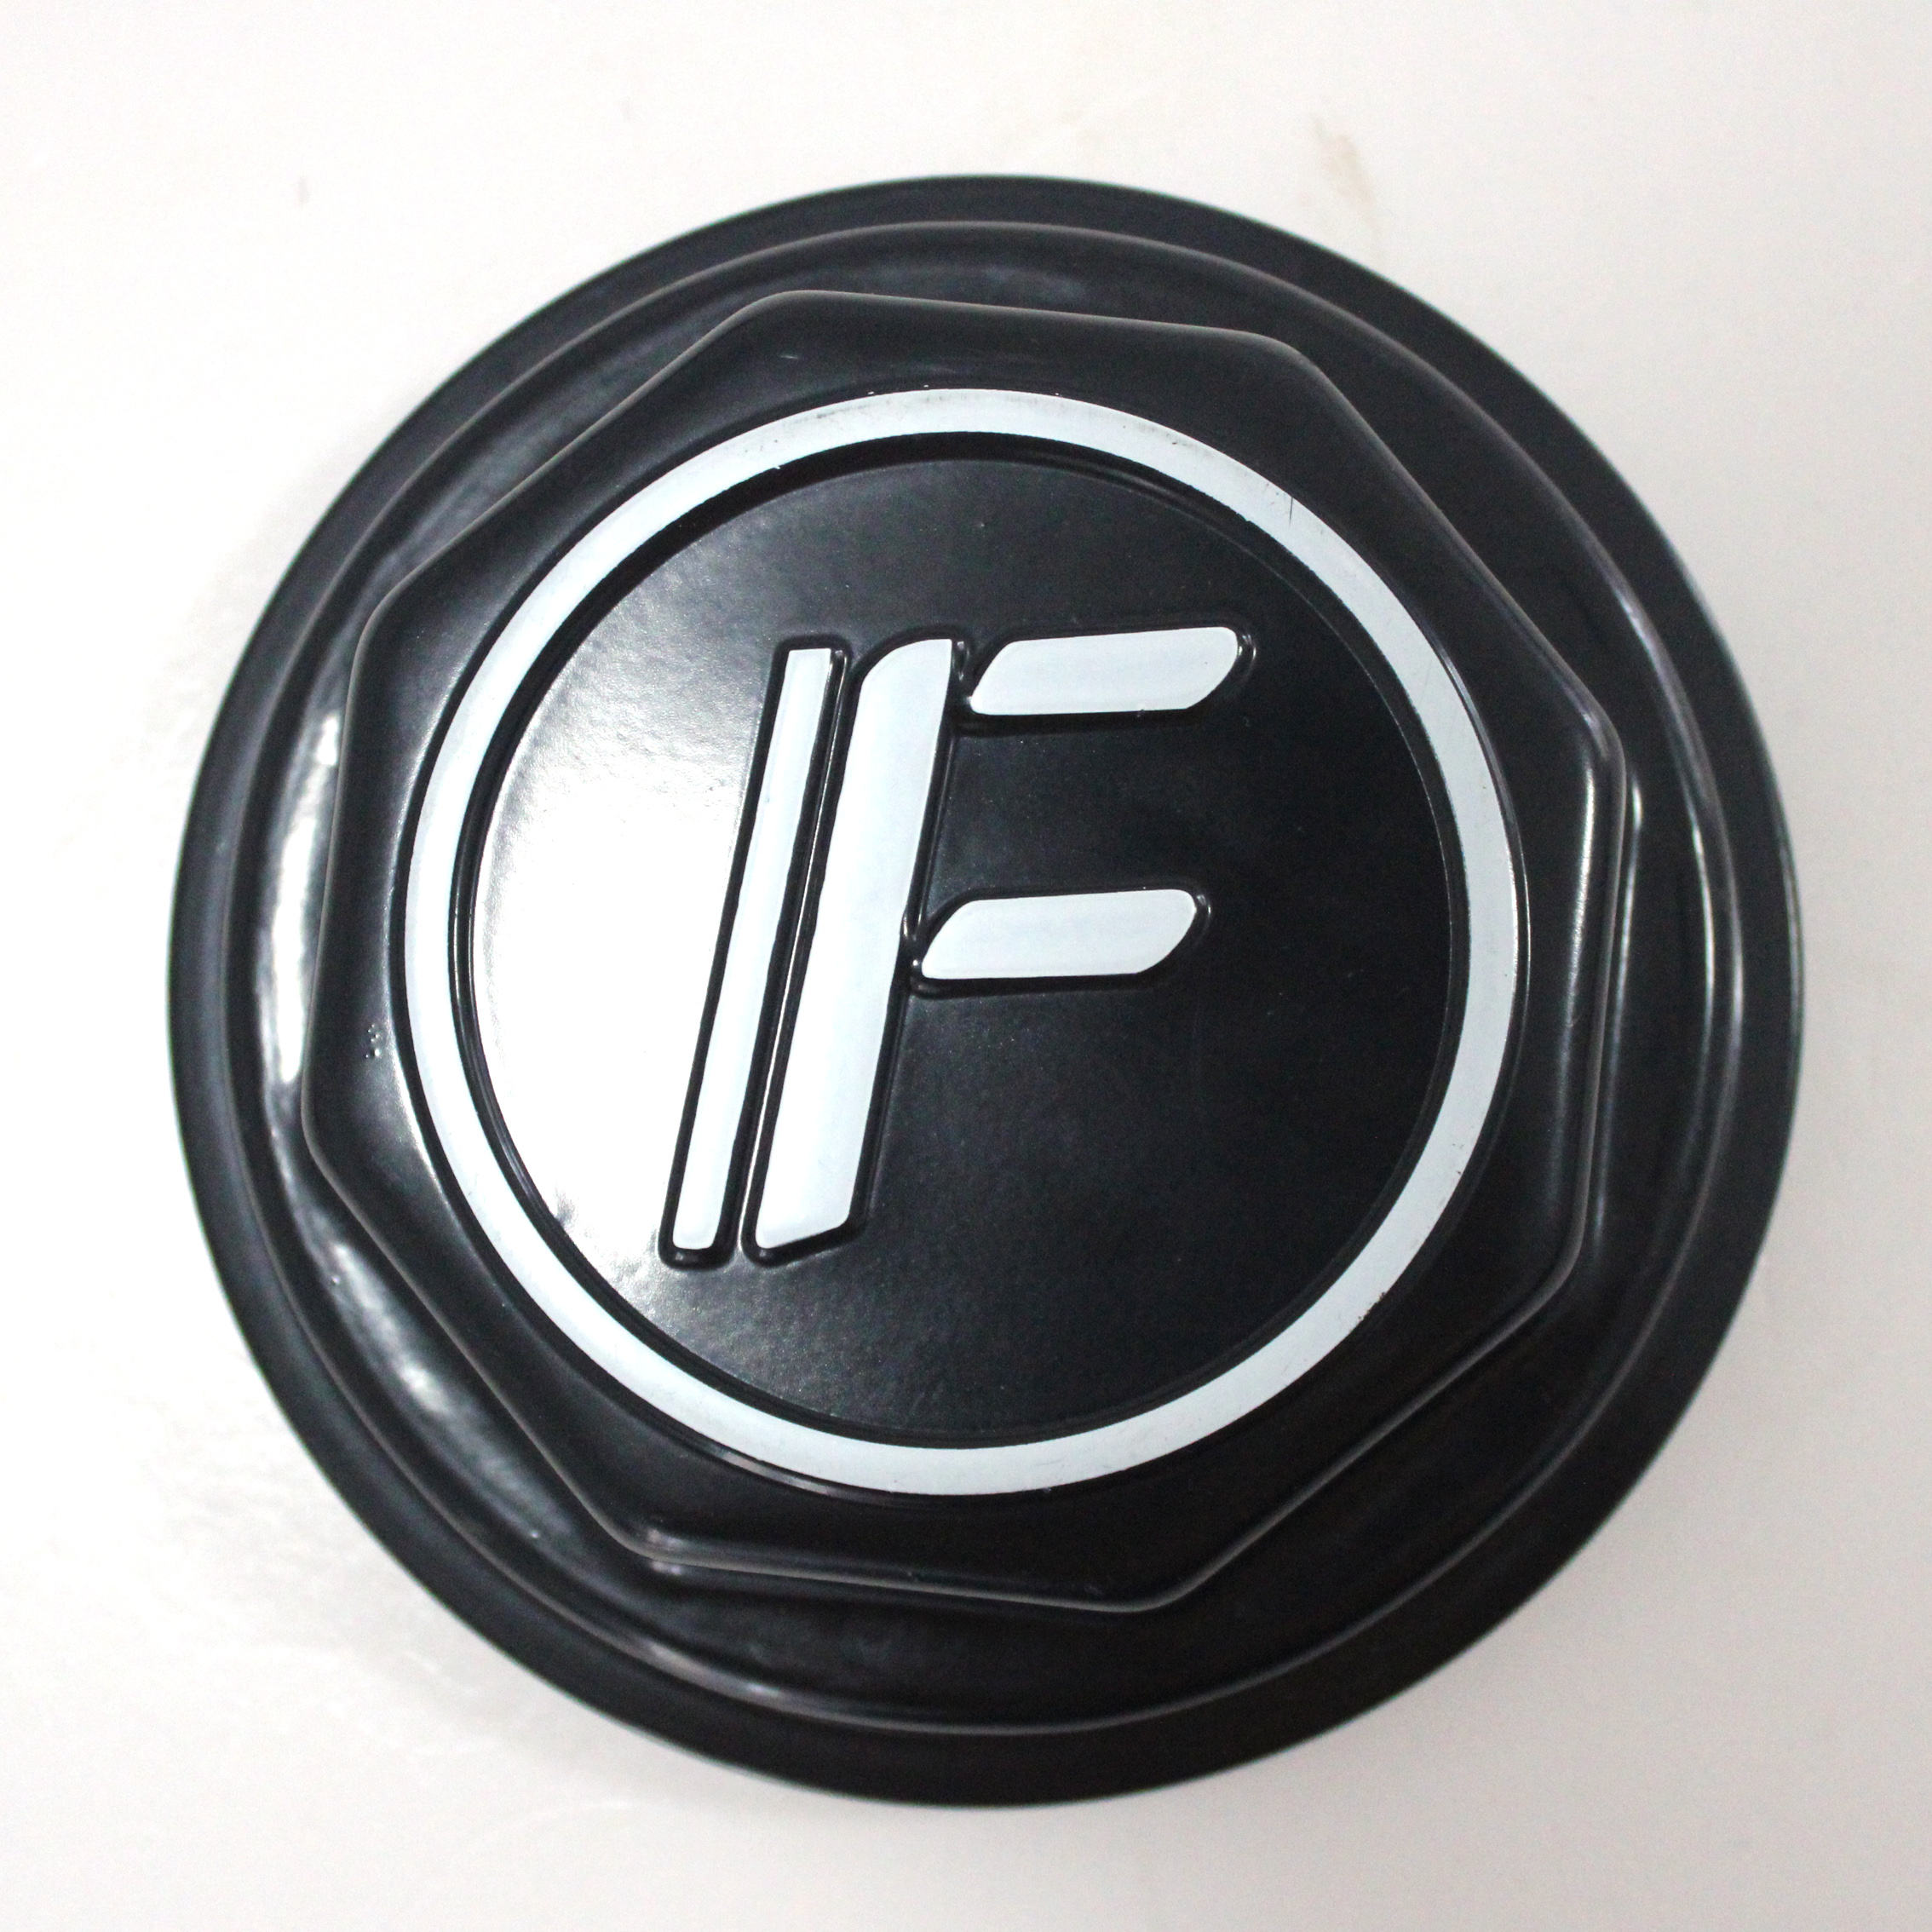 Trailer Spare Parts Hub Covers with Brand Fuwa Trailer Axle